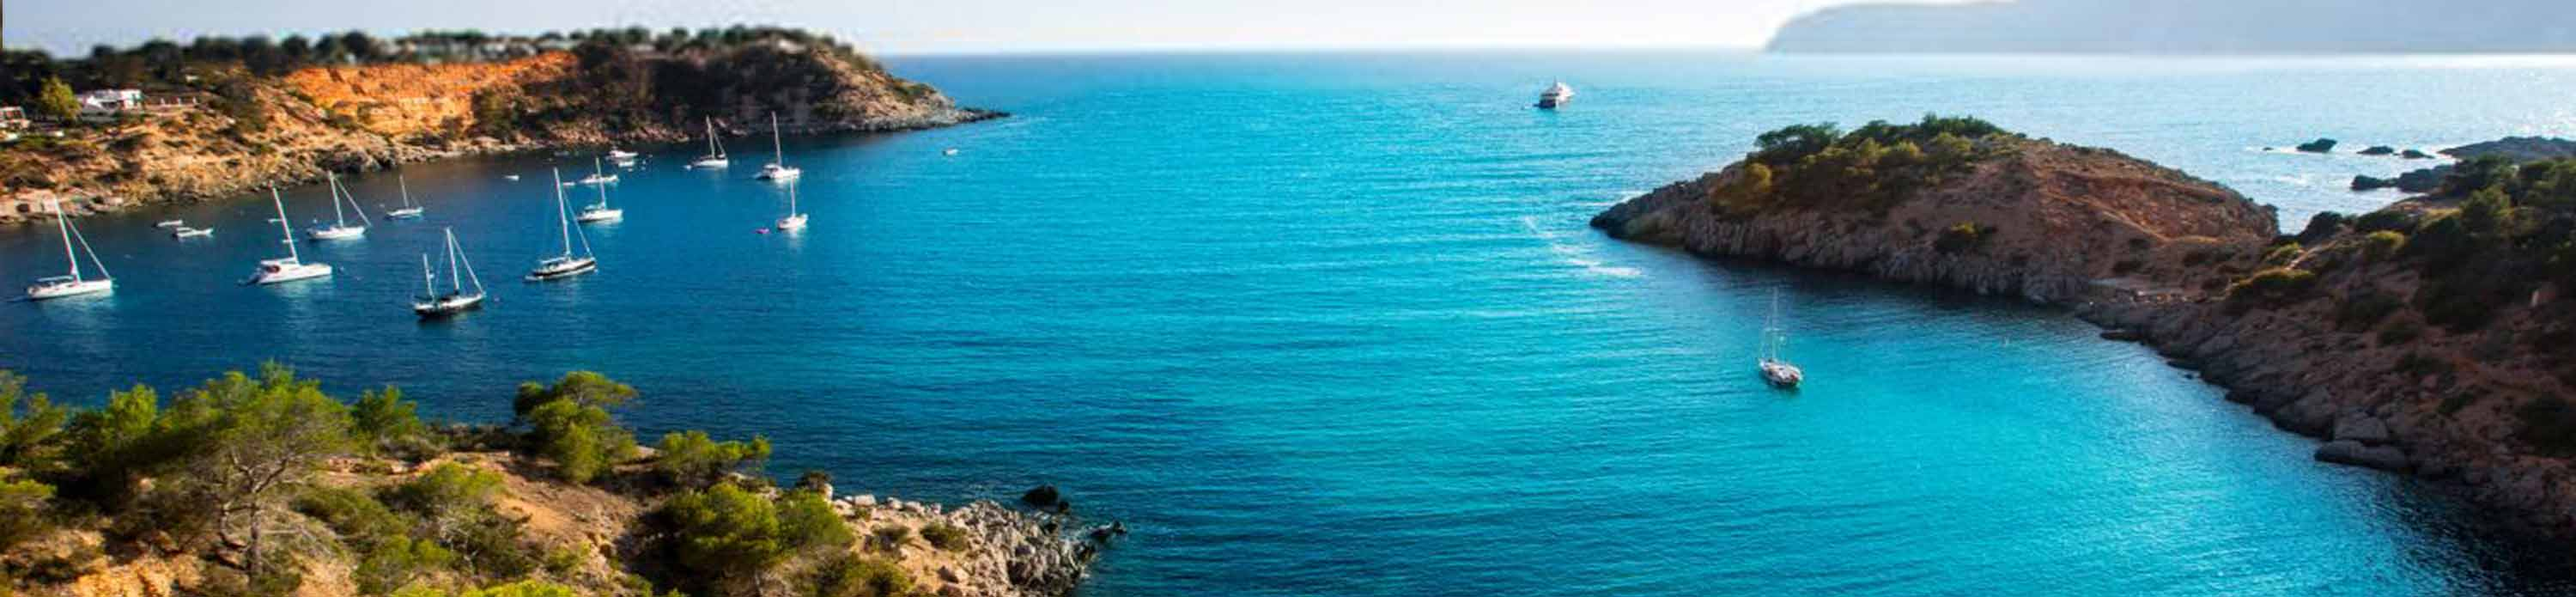 Yacht Charters in Ibiza and Formentera with views to remember forever